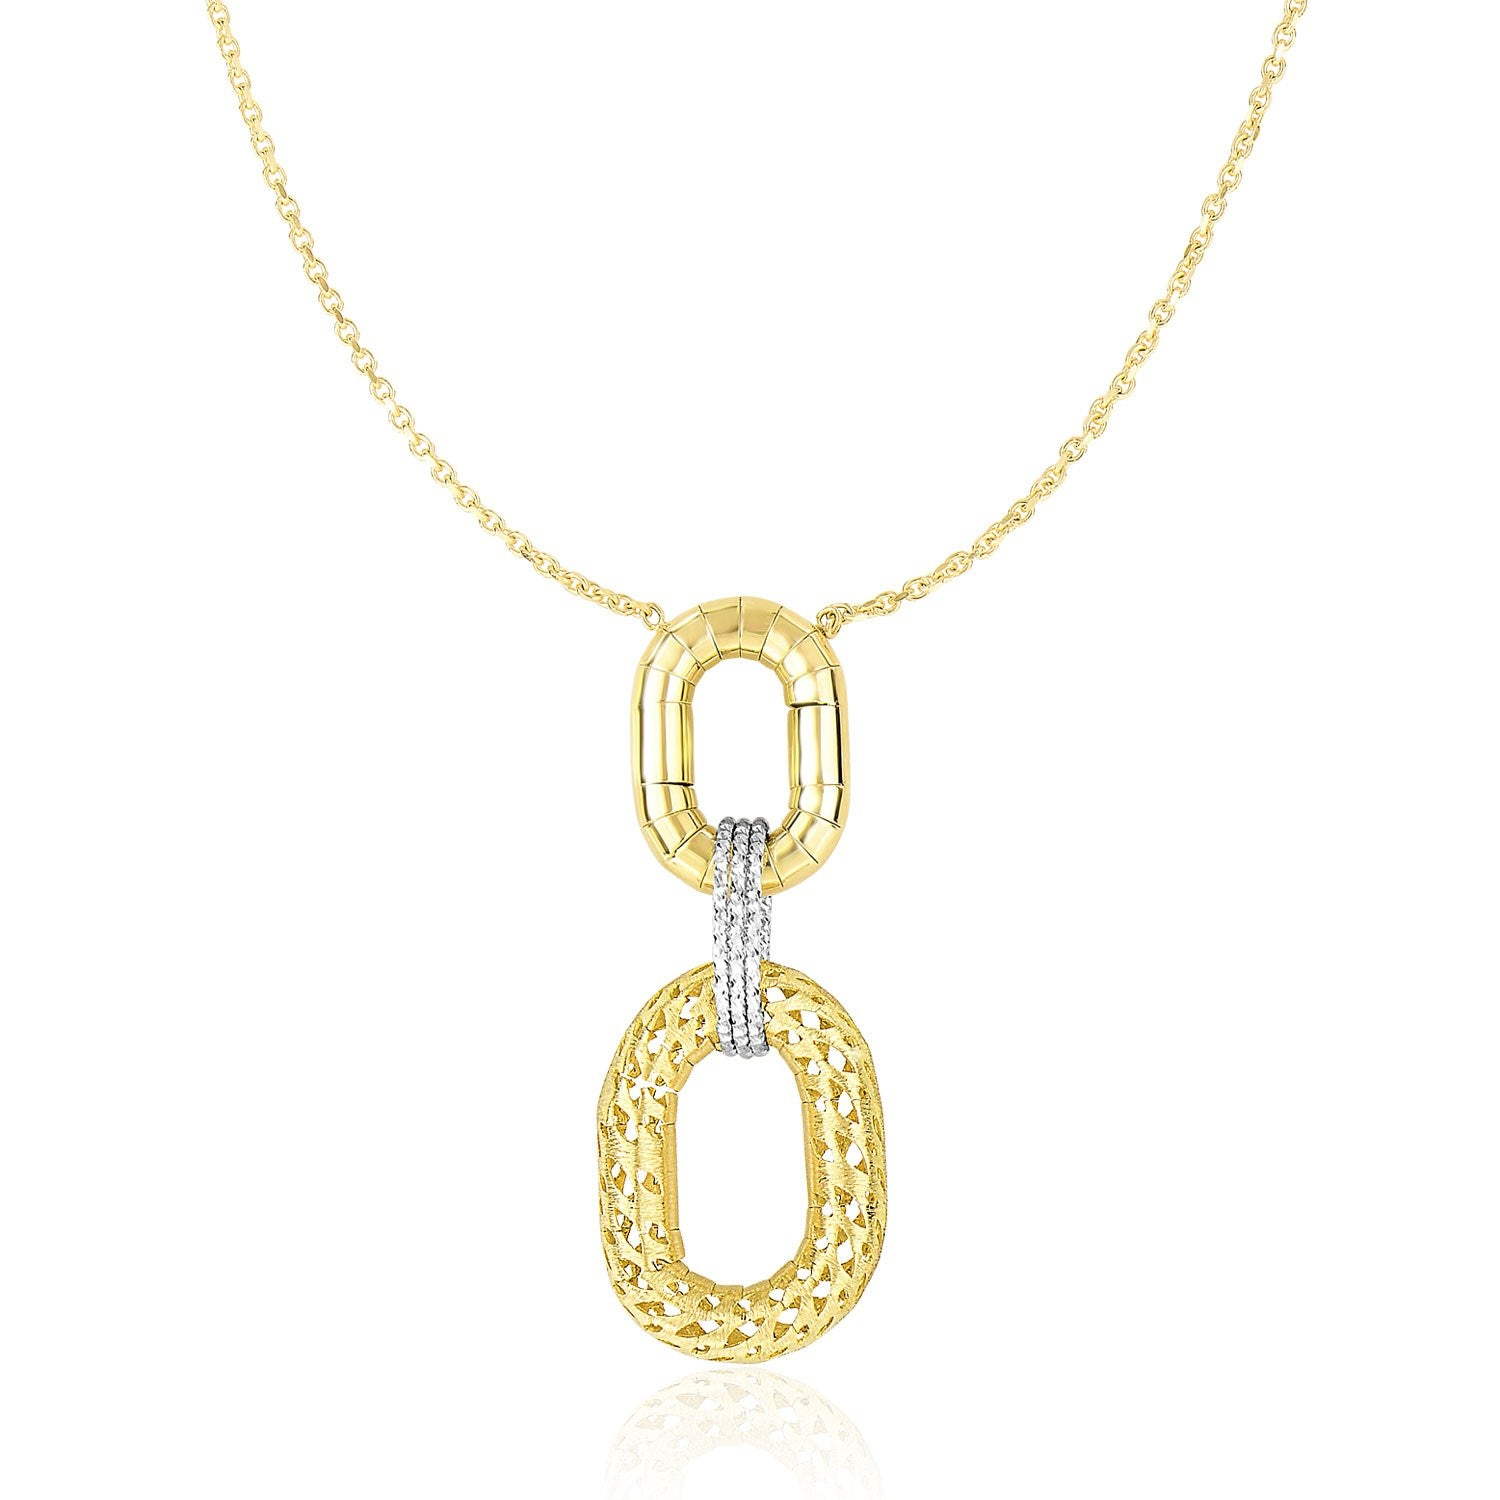 colour tone two necklaces category webstore h gold jewellery l samuel product necklace number material